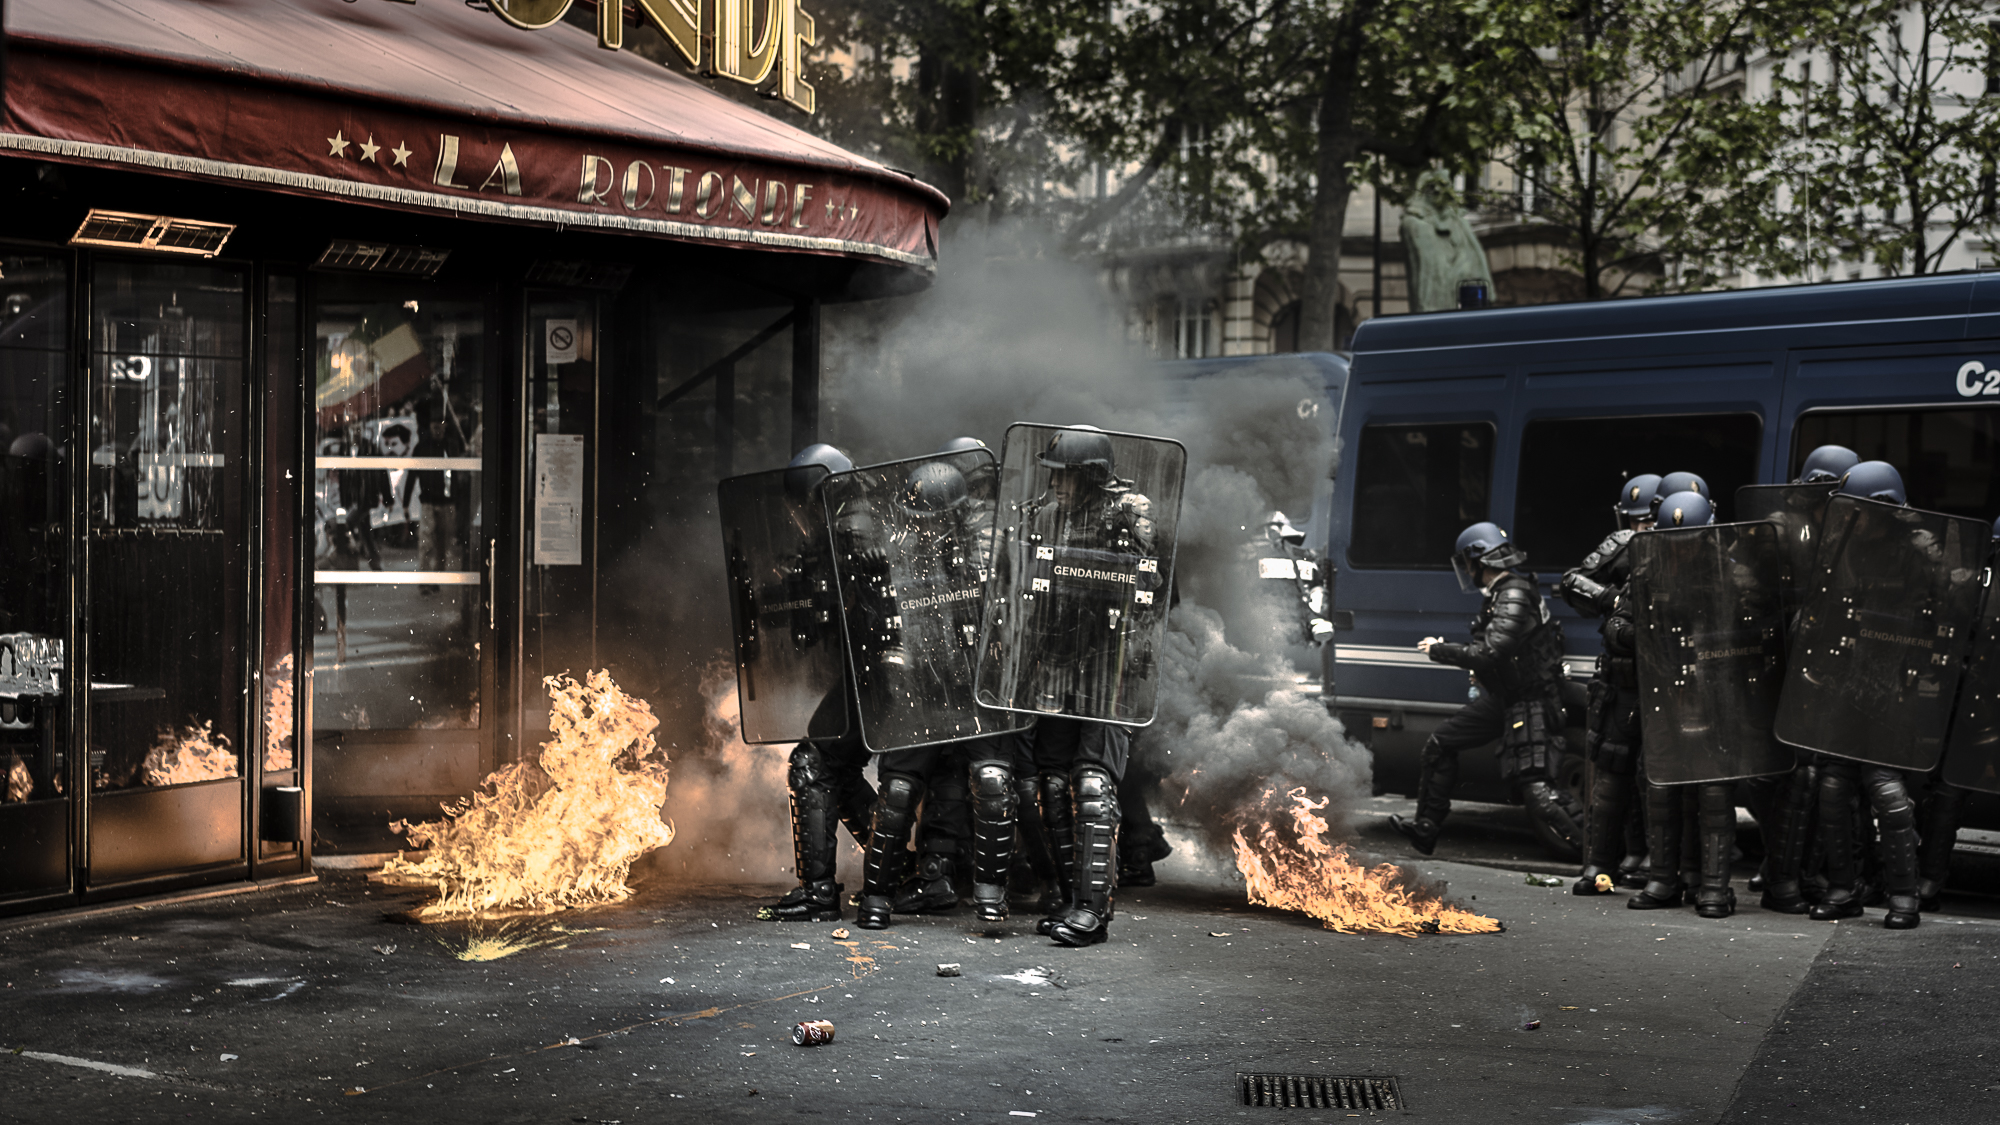 War-like images next to a Parisian cafe